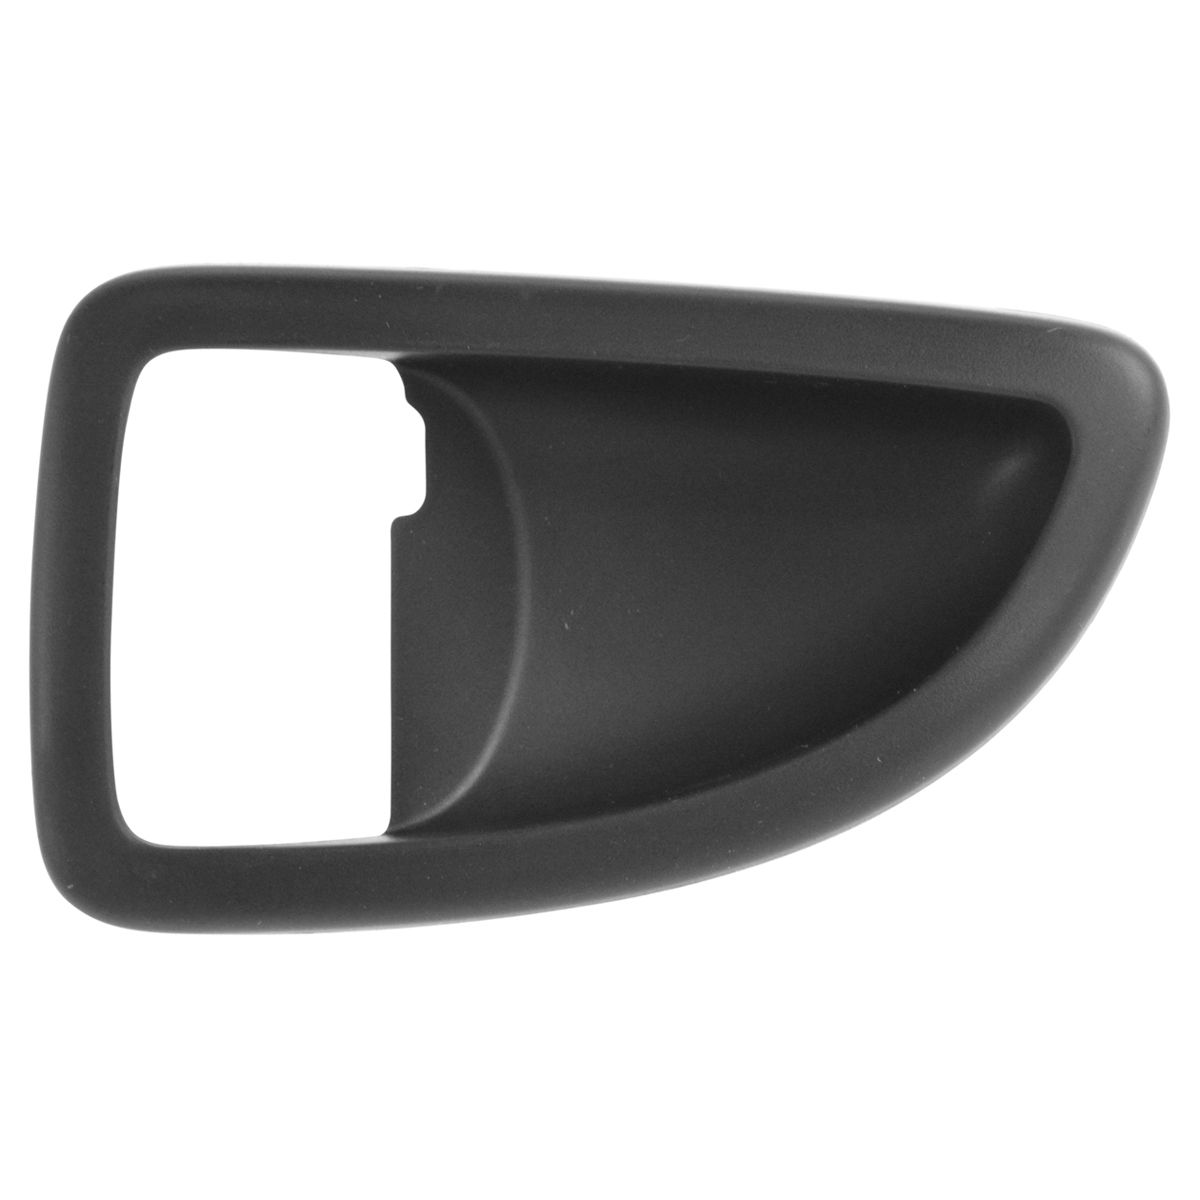 Ebony Genuine GM 15844059 Door Handle Bezel Front Interior